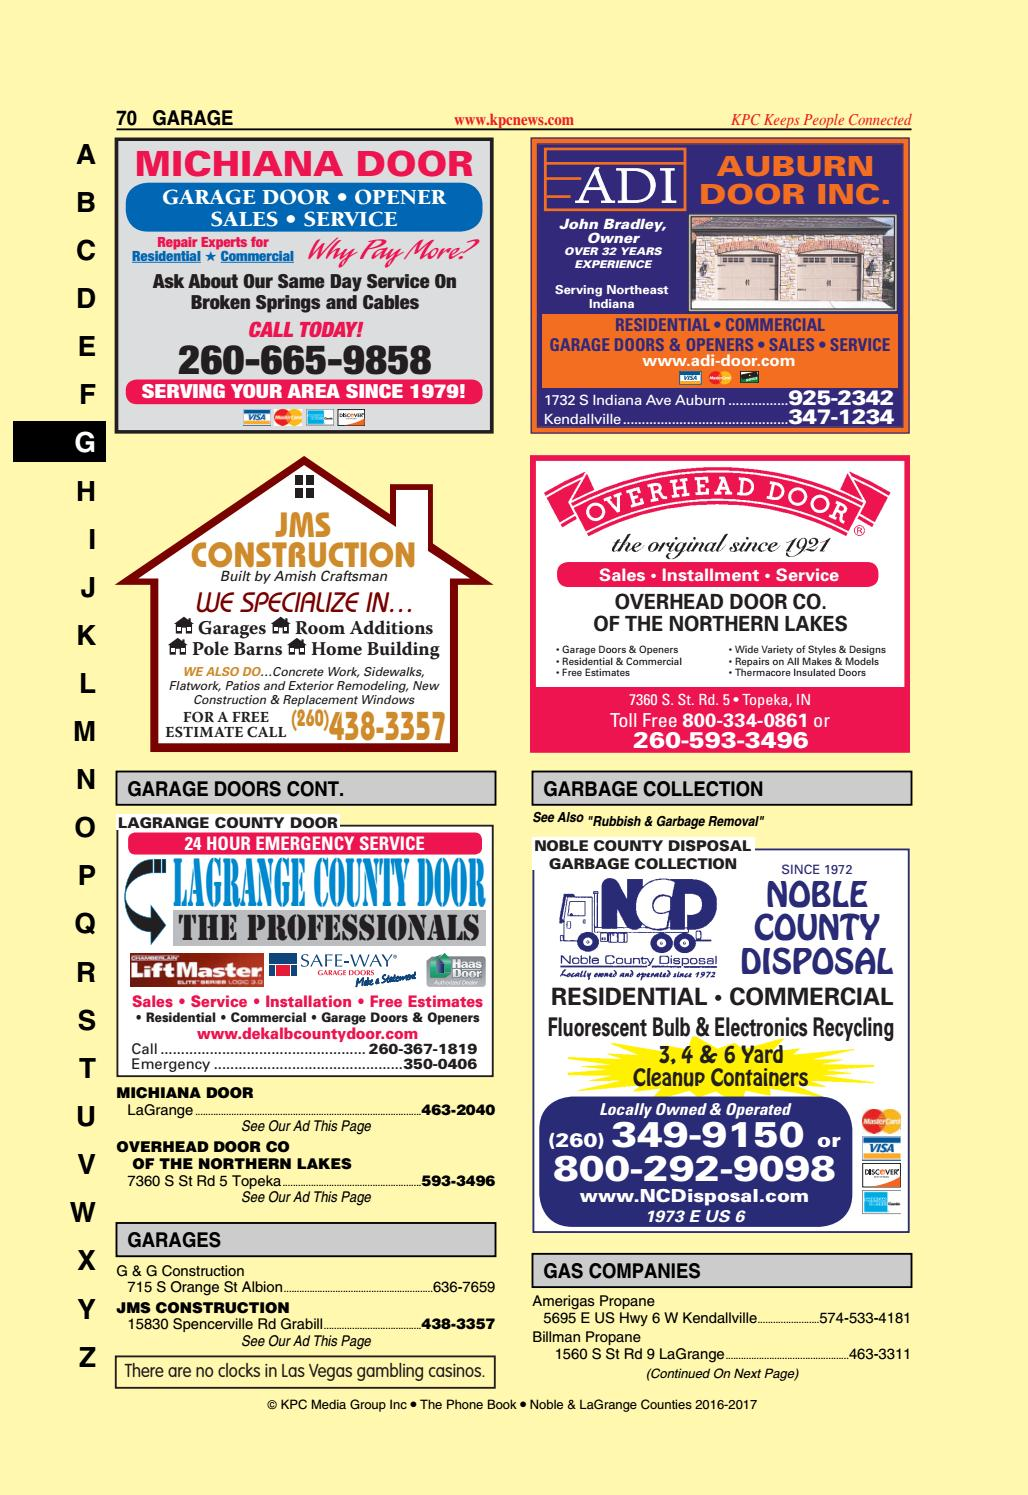 2016 2017 Phone Book Noble And Lagrange Counties By Kpc